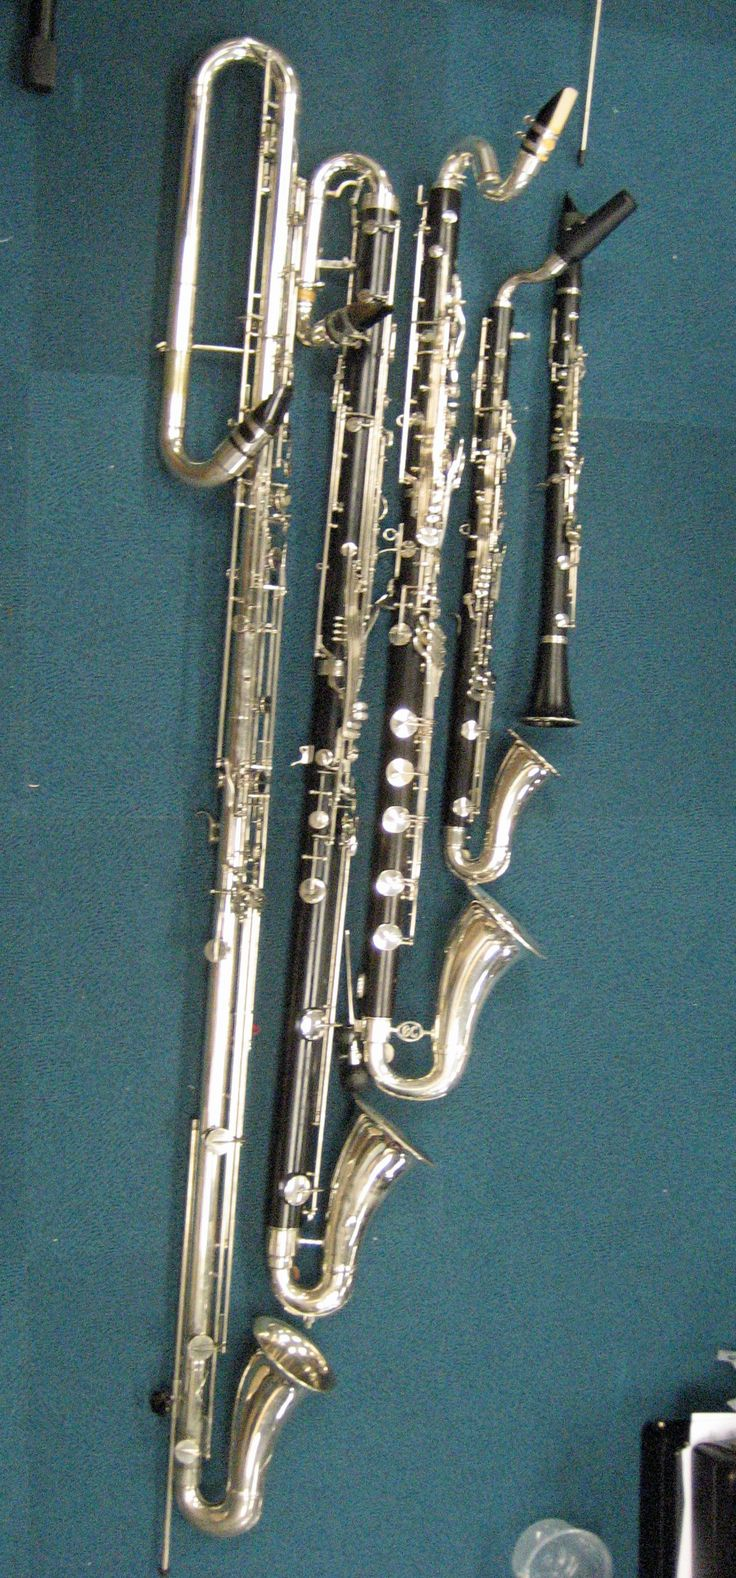 clarinets  you see that small one? thats what i play! its a b flat clarinet ive always wanted to learn to play the e flat clarinet though